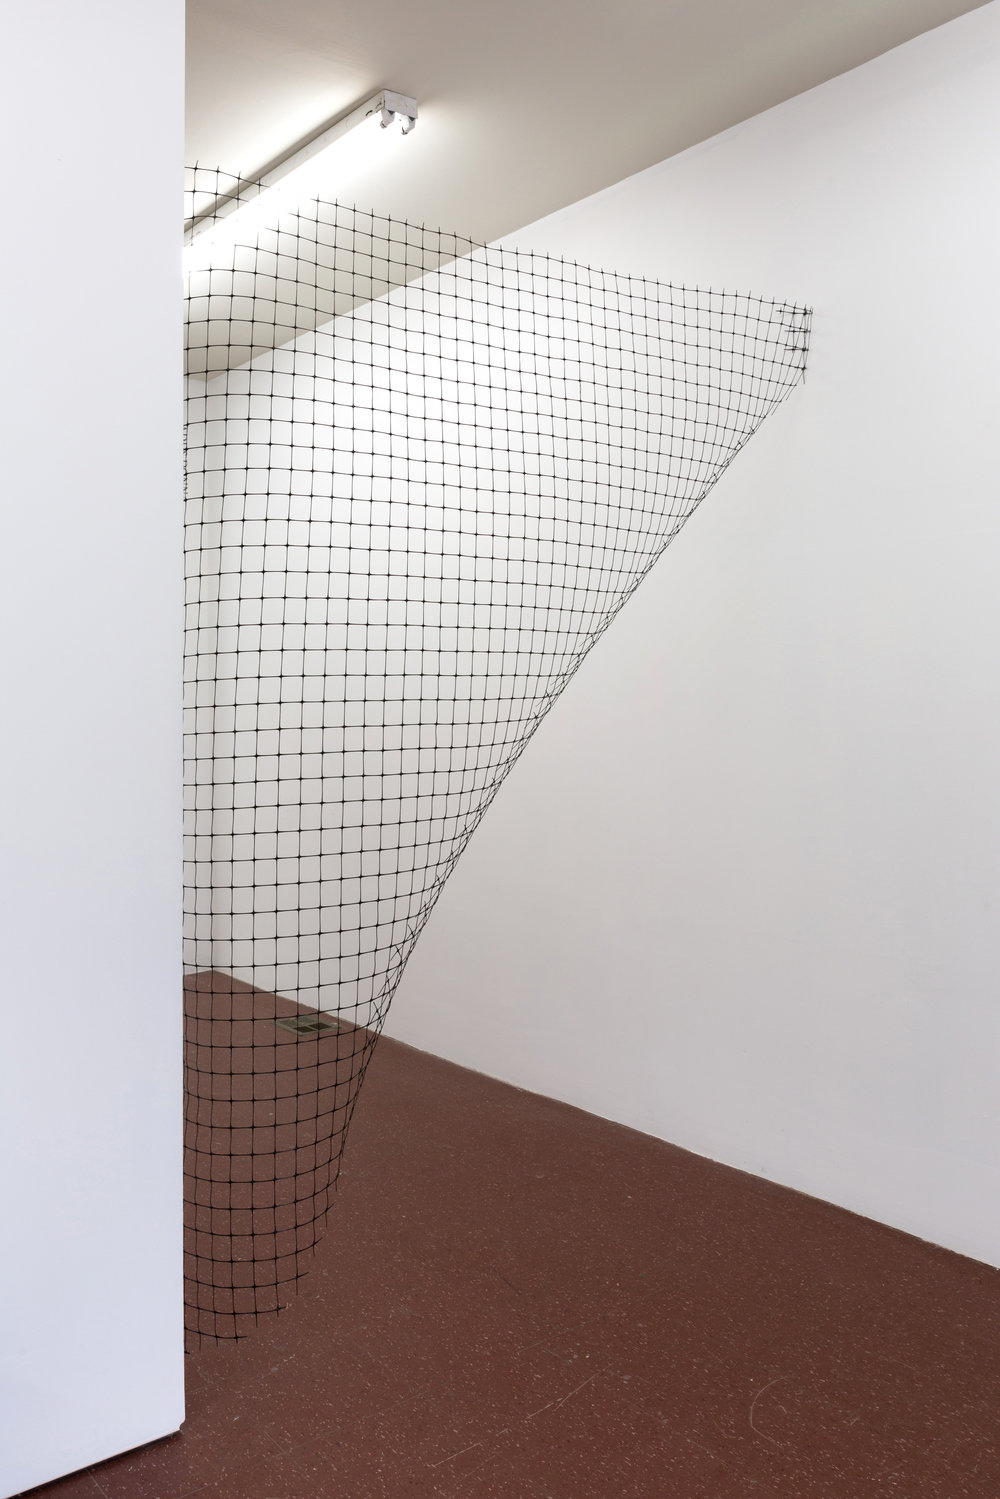 Enclosure, 2017 deer fencing dimensions variable